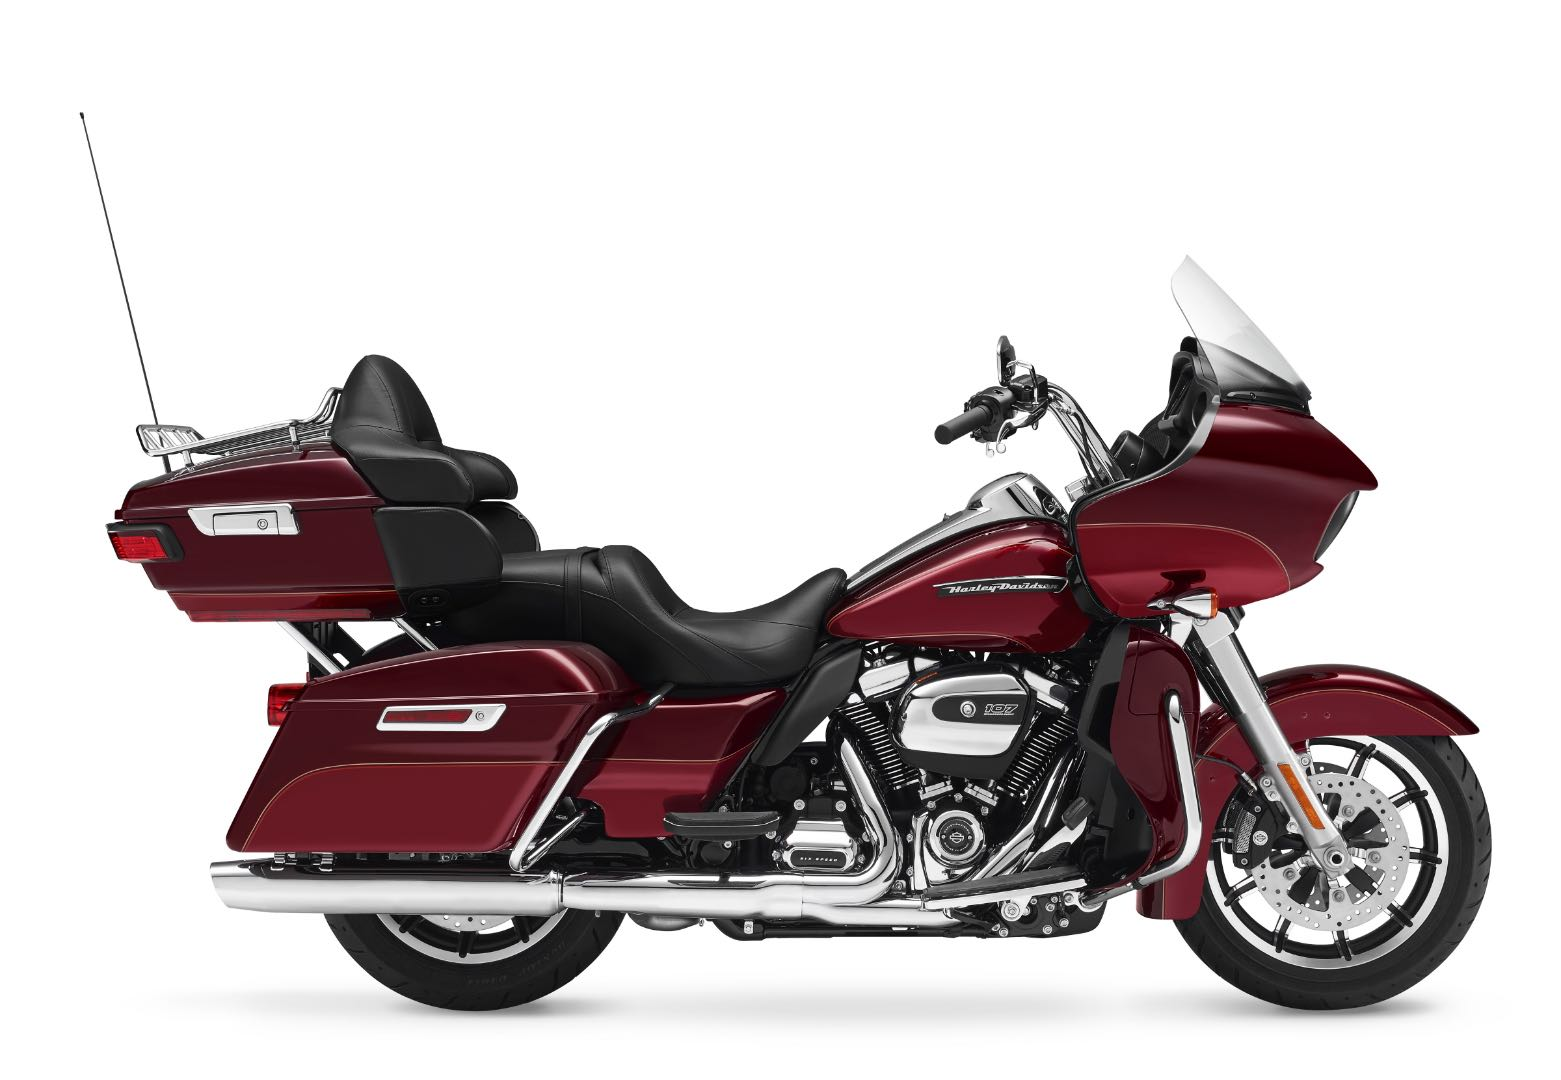 2017 Harley-Davidson Road Glide Ultra Buyer's Guide | Specs & Price